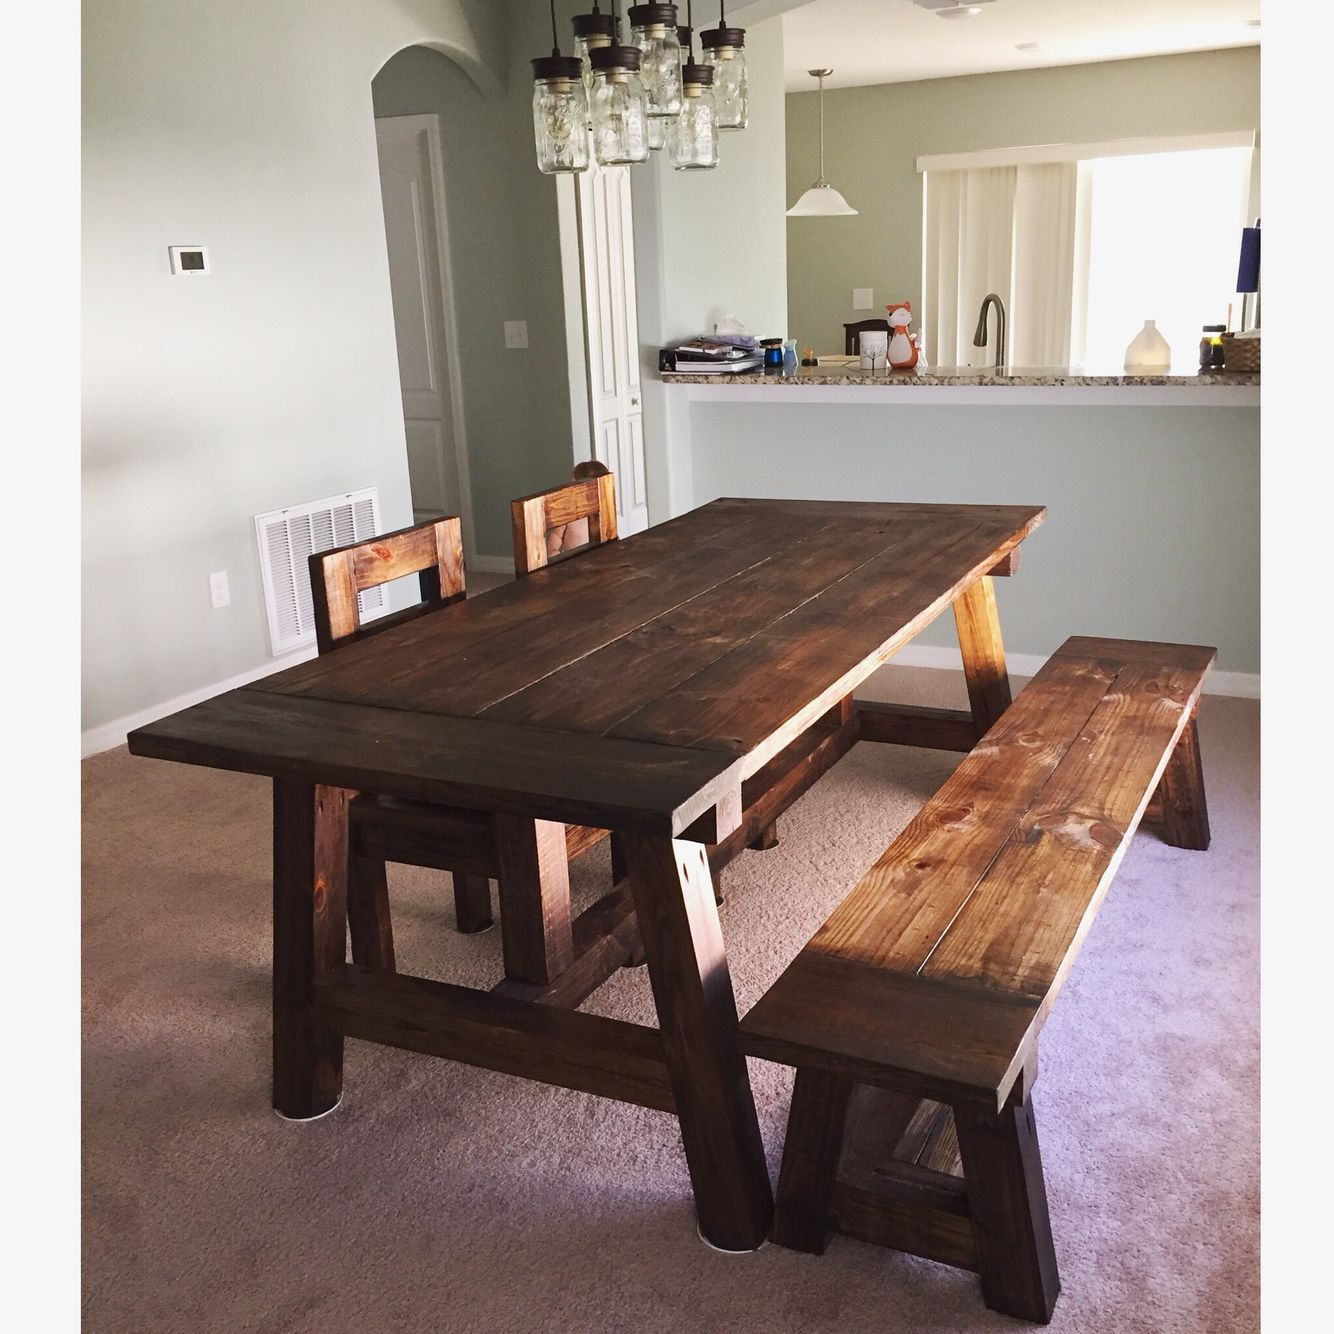 Rustic dining room table set in southern yellow pine wood ...